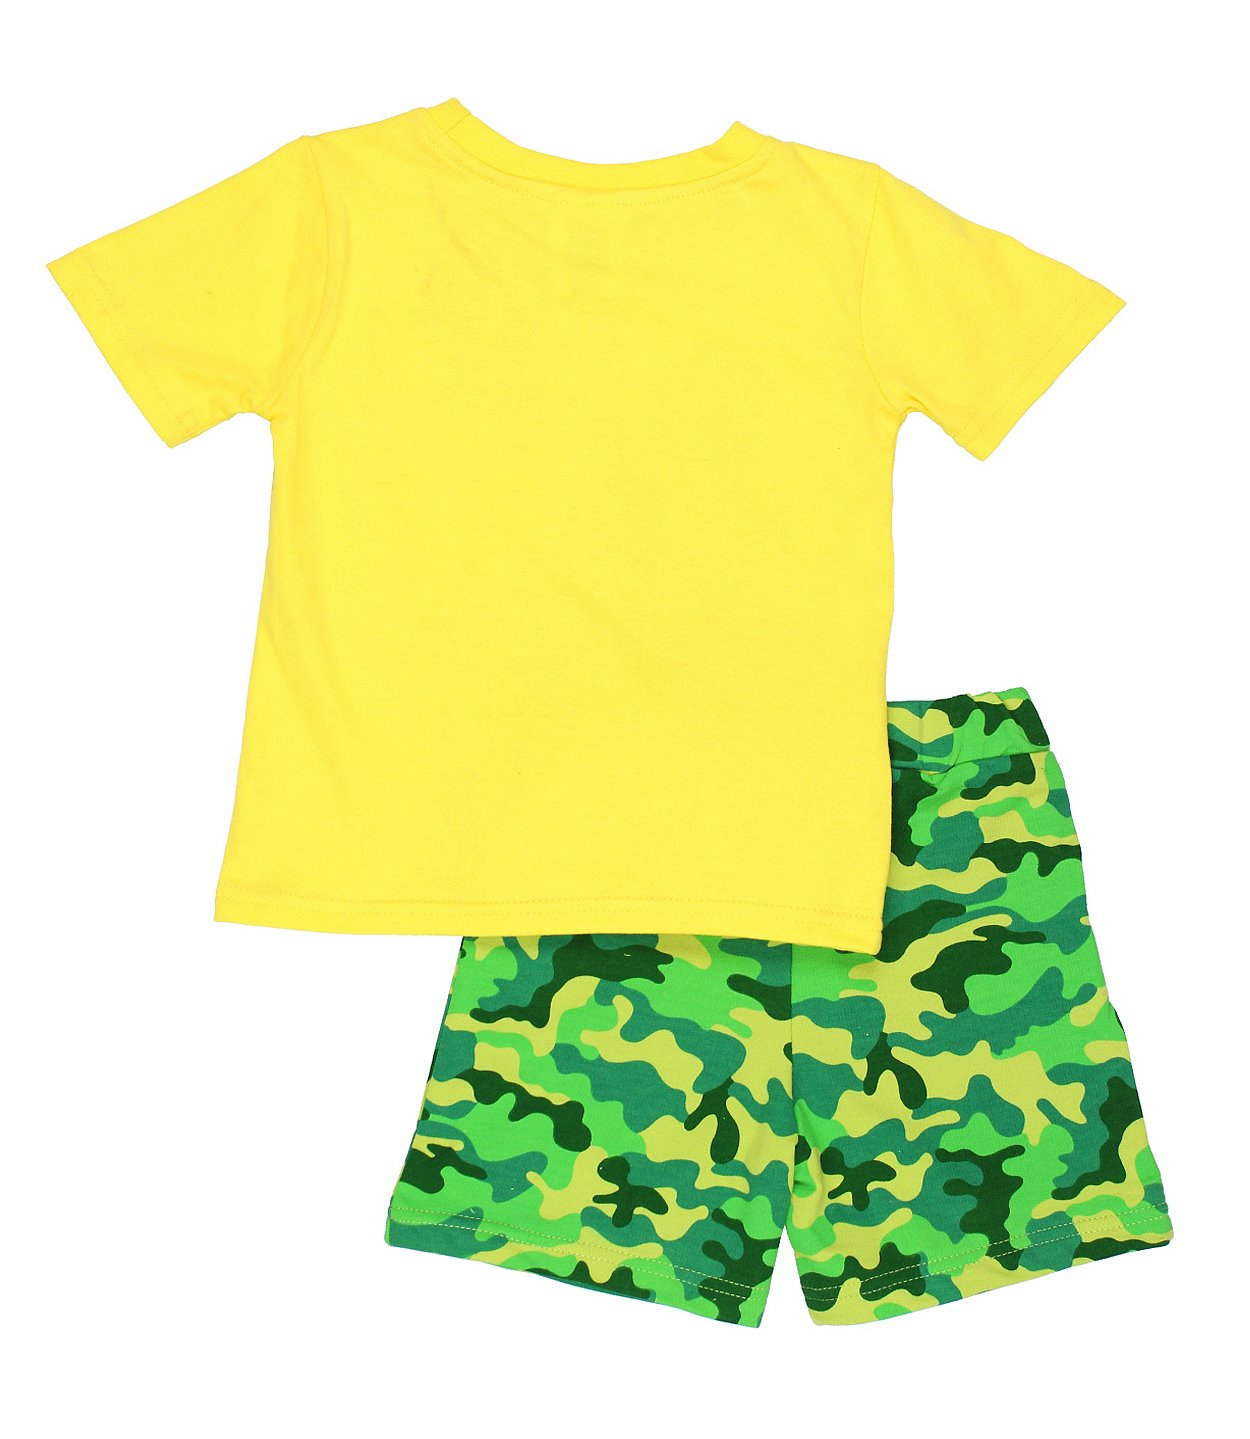 Buster Brown Later Gator Tee and Camo Shorts